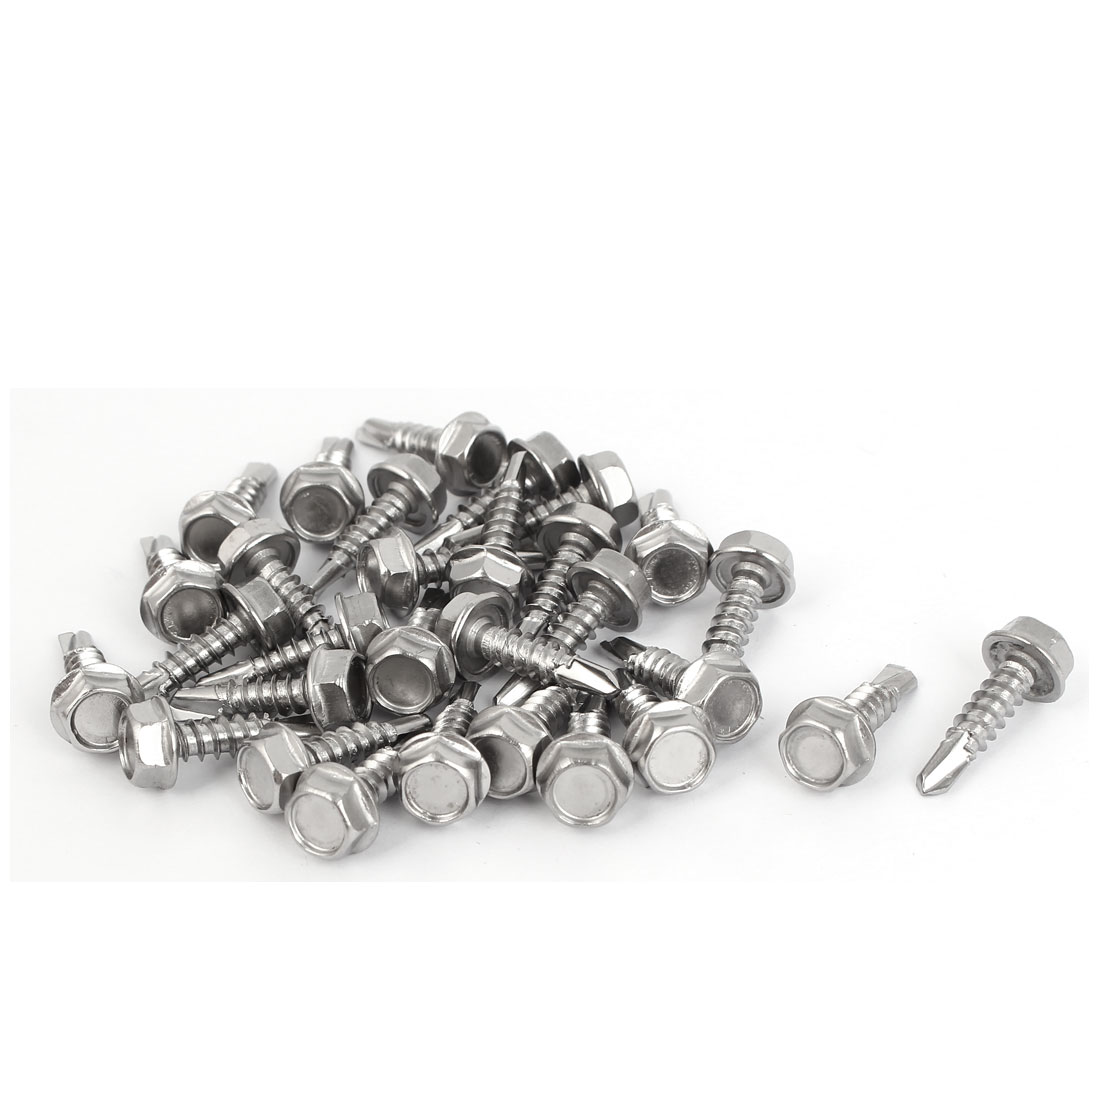 M4.8 x 19mm #10-16 Thread Hex Washer Head Self Drilling Tek Screws Bolts 30 Pcs